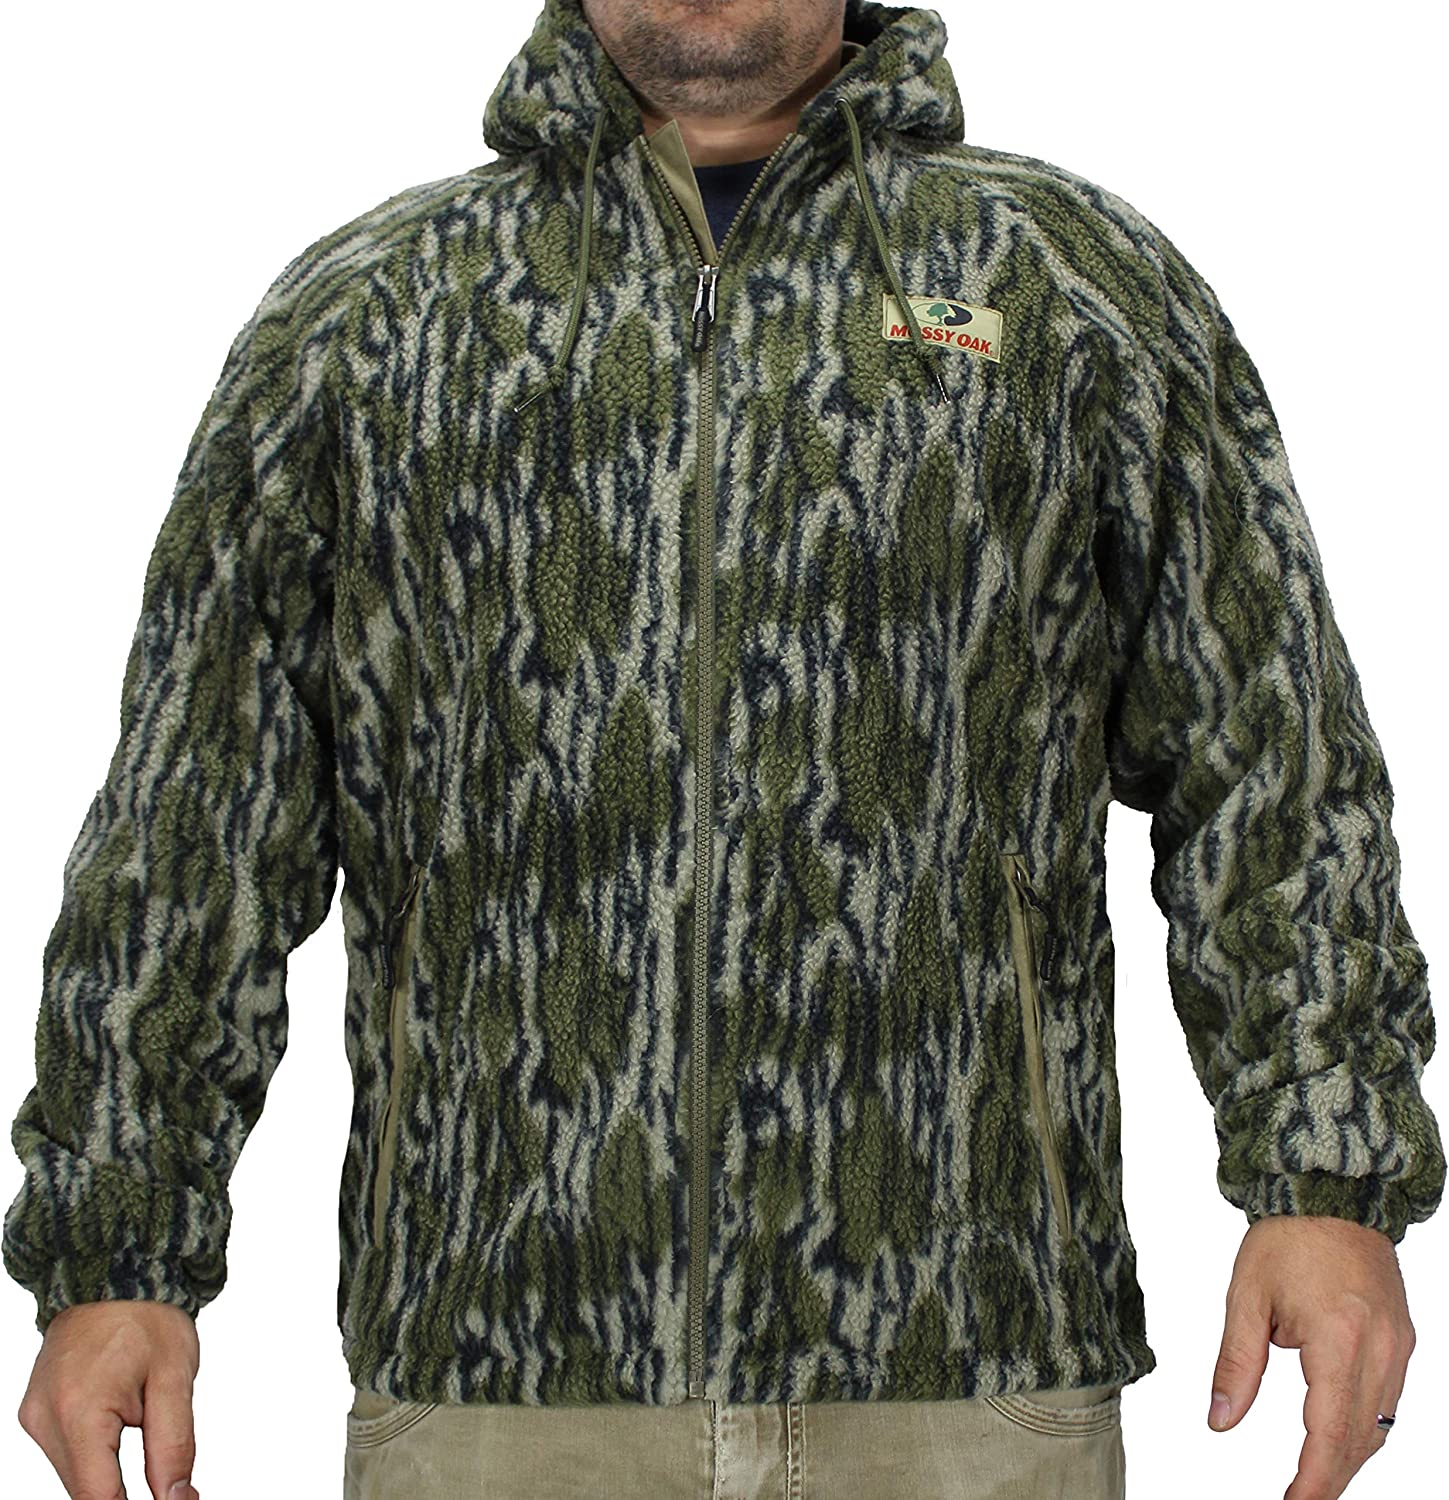 Wasatch Sherpa Excellent Fleece Mid Weight Ultra Oak Hunti Quiet Max 83% OFF Bow Mossy